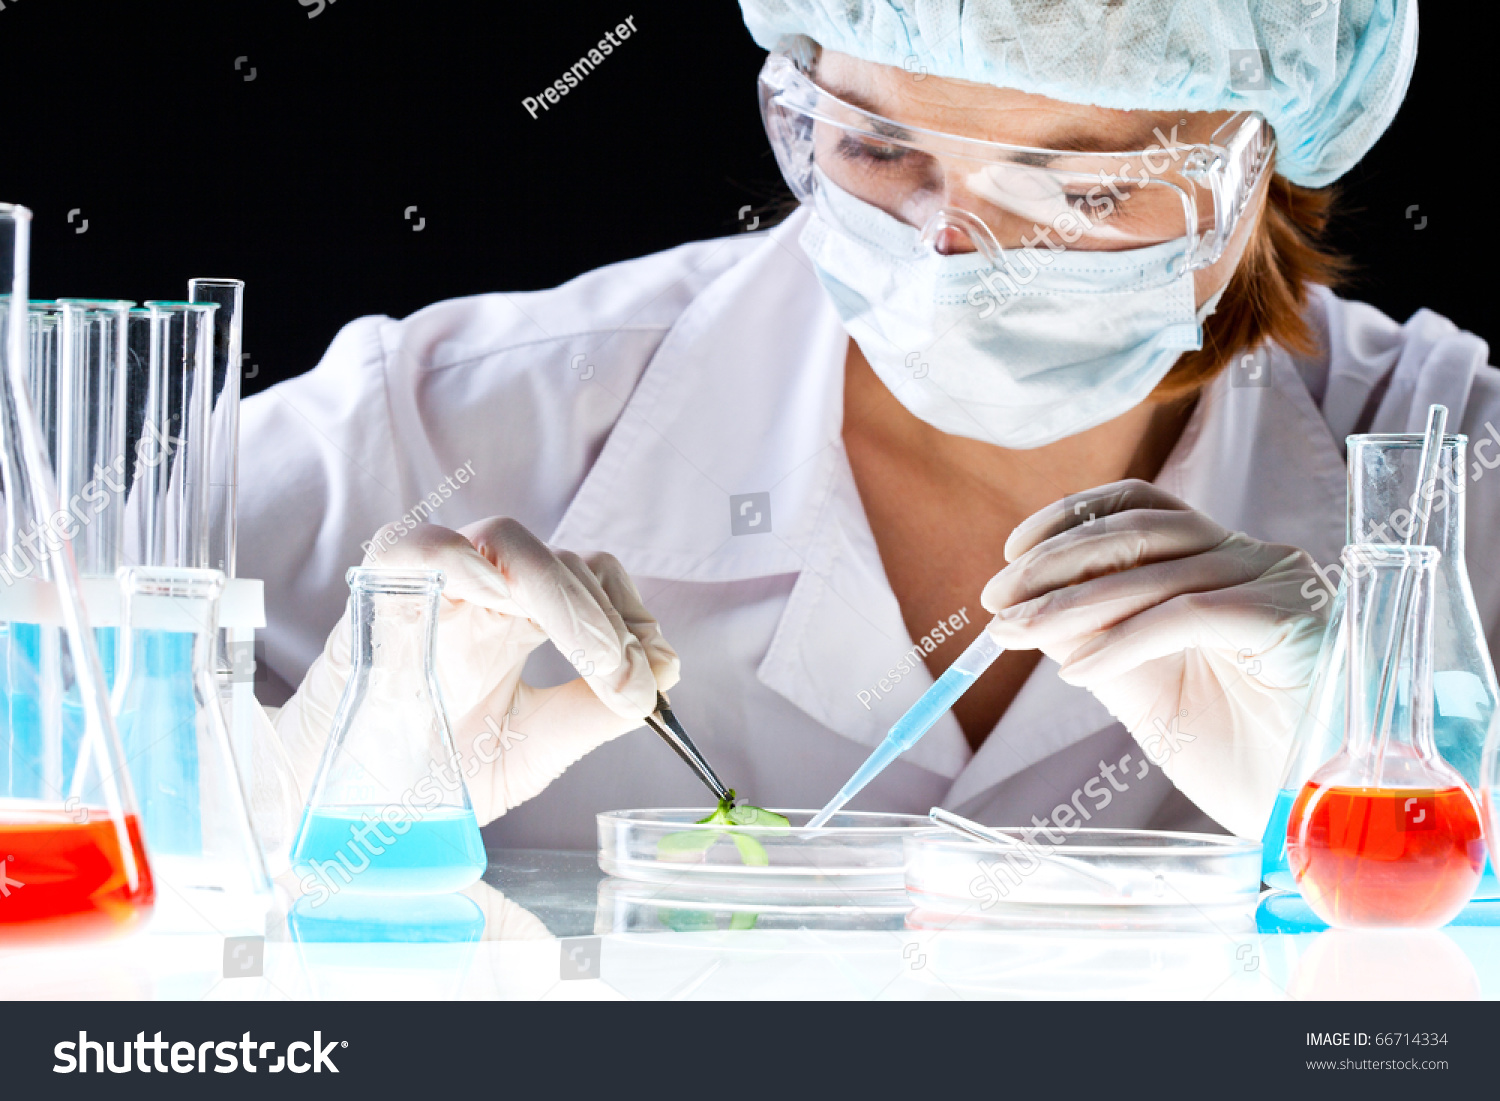 Closeup Clinician Working Tools During Scientific Stock Photo ...